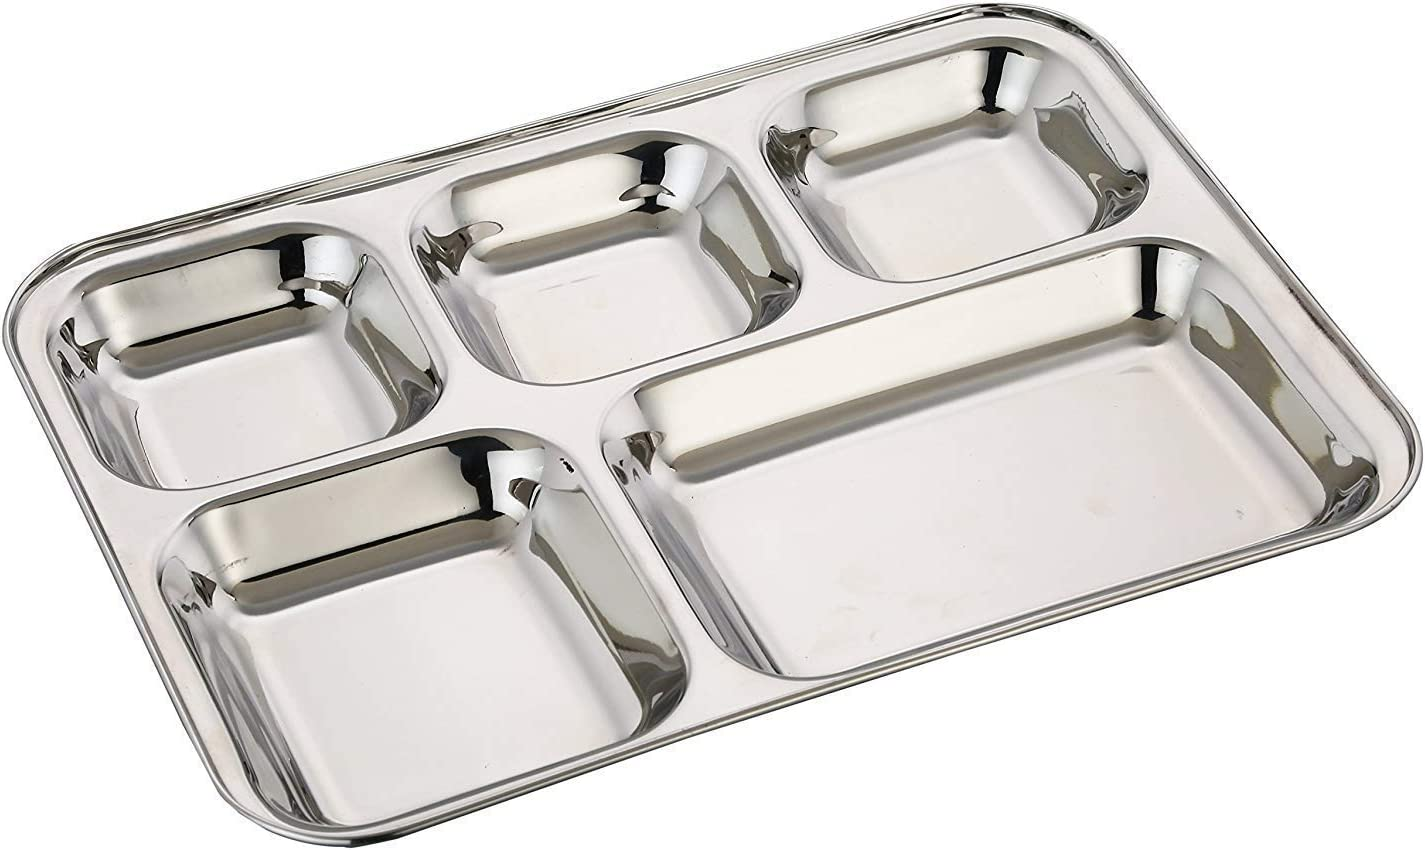 Khandekar Stainless Steel Rectangular Dinner Plate with 5 Compartment, Cafeteria Mess Tray, Food Divided Plate, Kids Lunch Plate for Toddlers, Outdoor Camping Dish - Silver, 13 inch